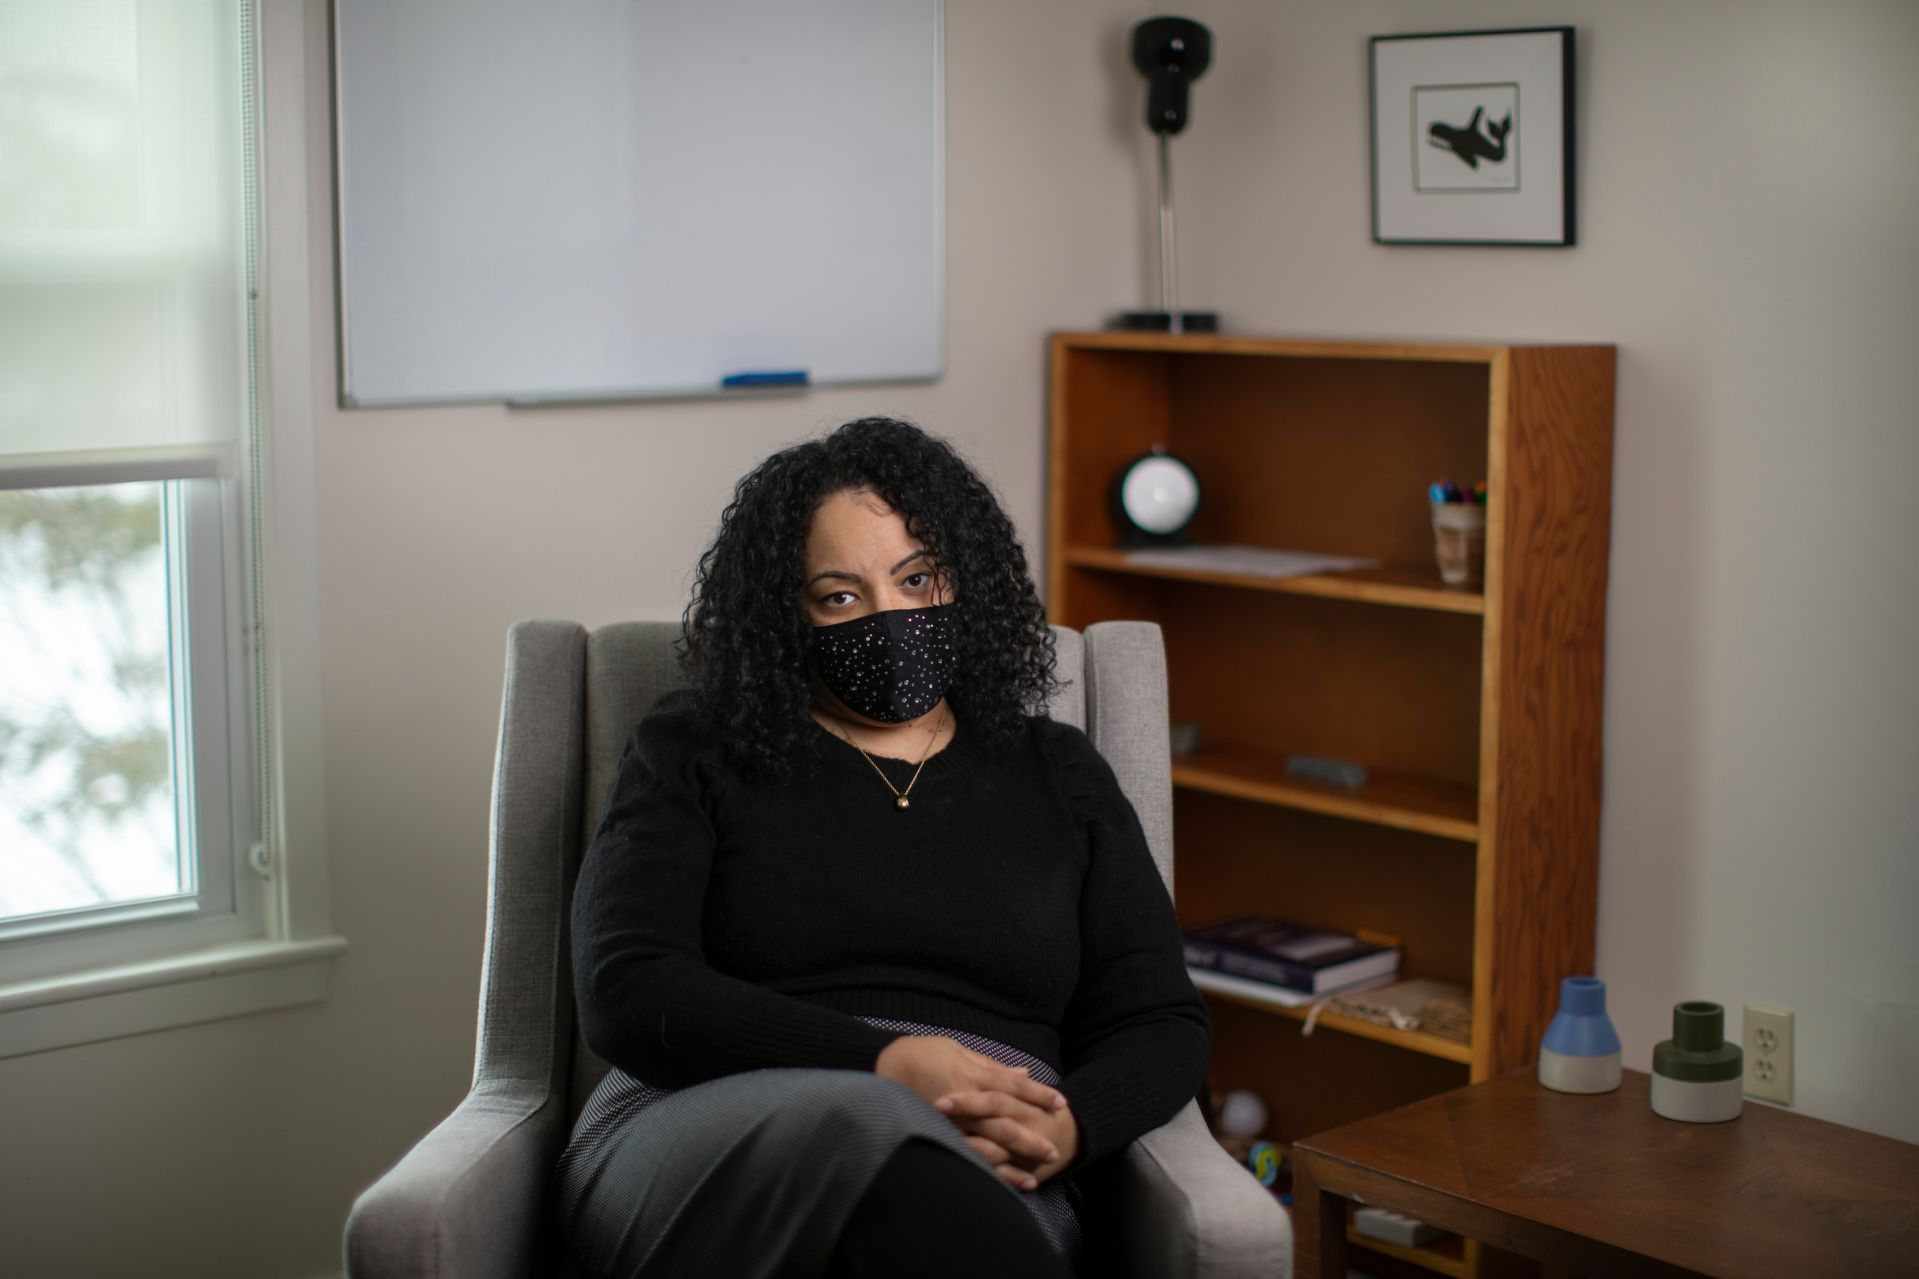 A psychological counselor sits in her office.